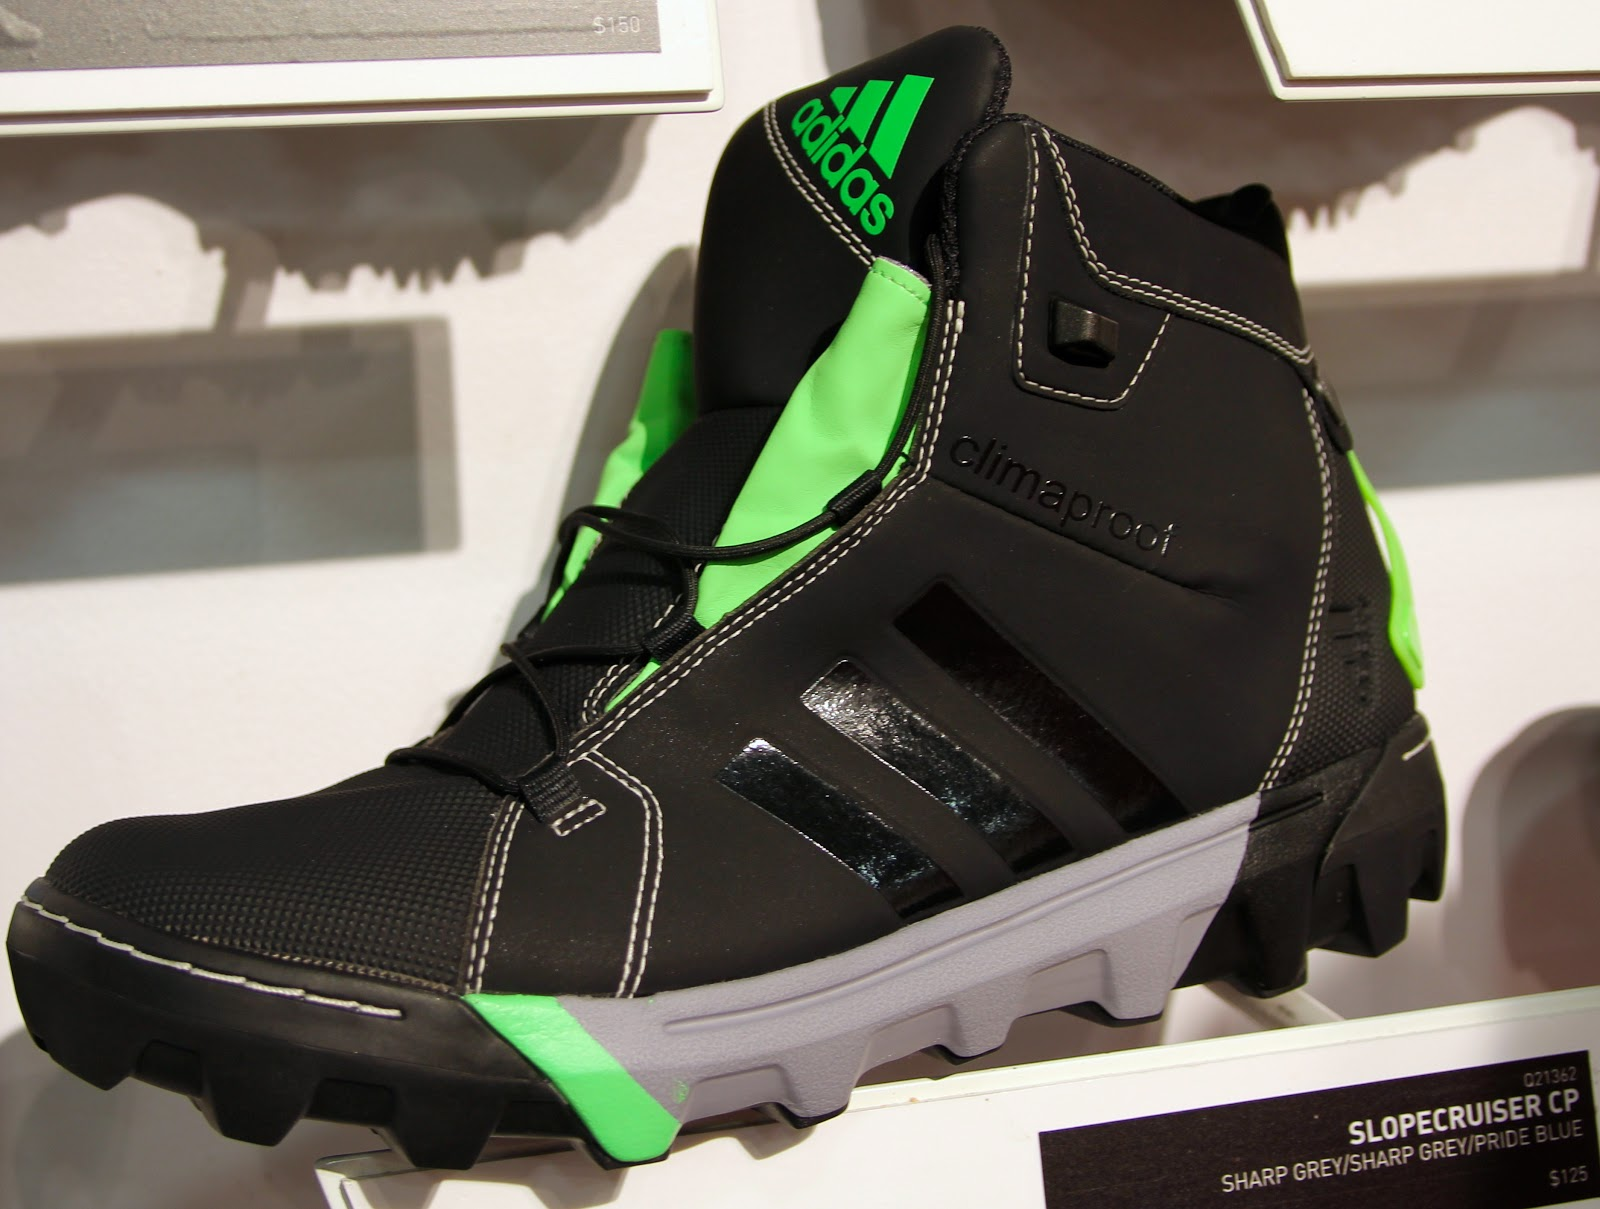 Slopecruiser CP-$125-same features as above in Black/Ray Green